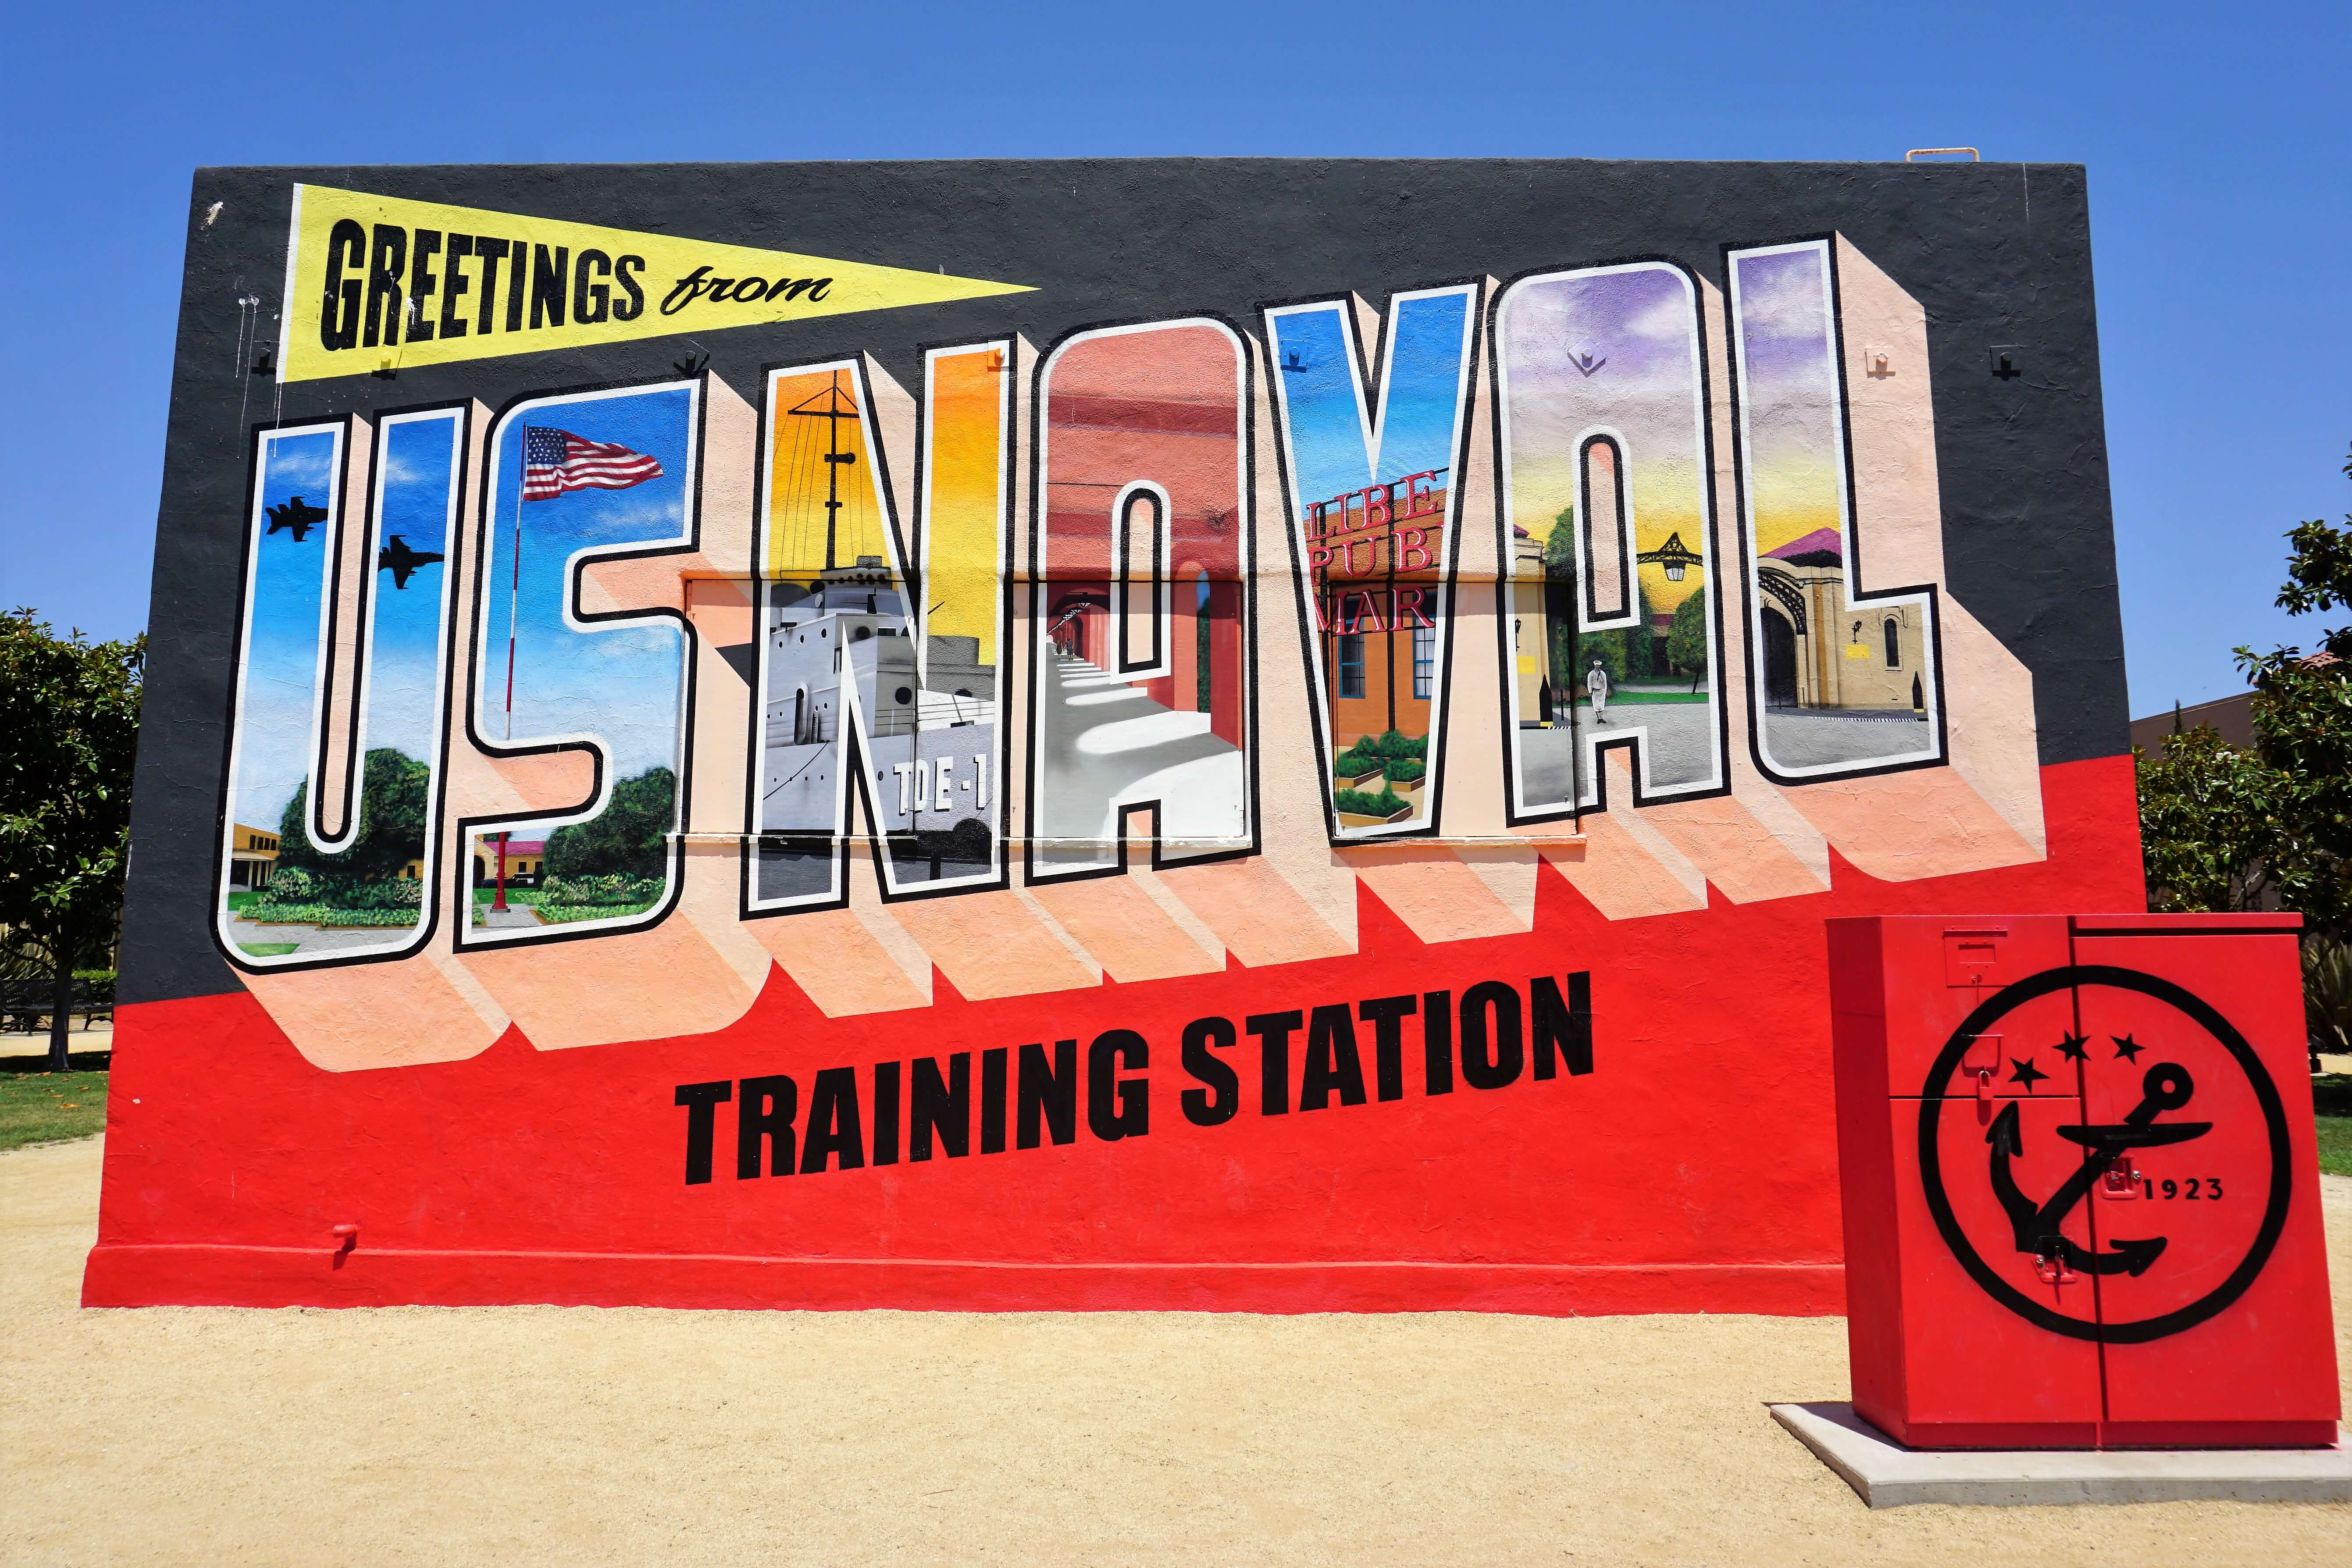 US Naval Training Station Mural, seen at Liberty Station in San Diego